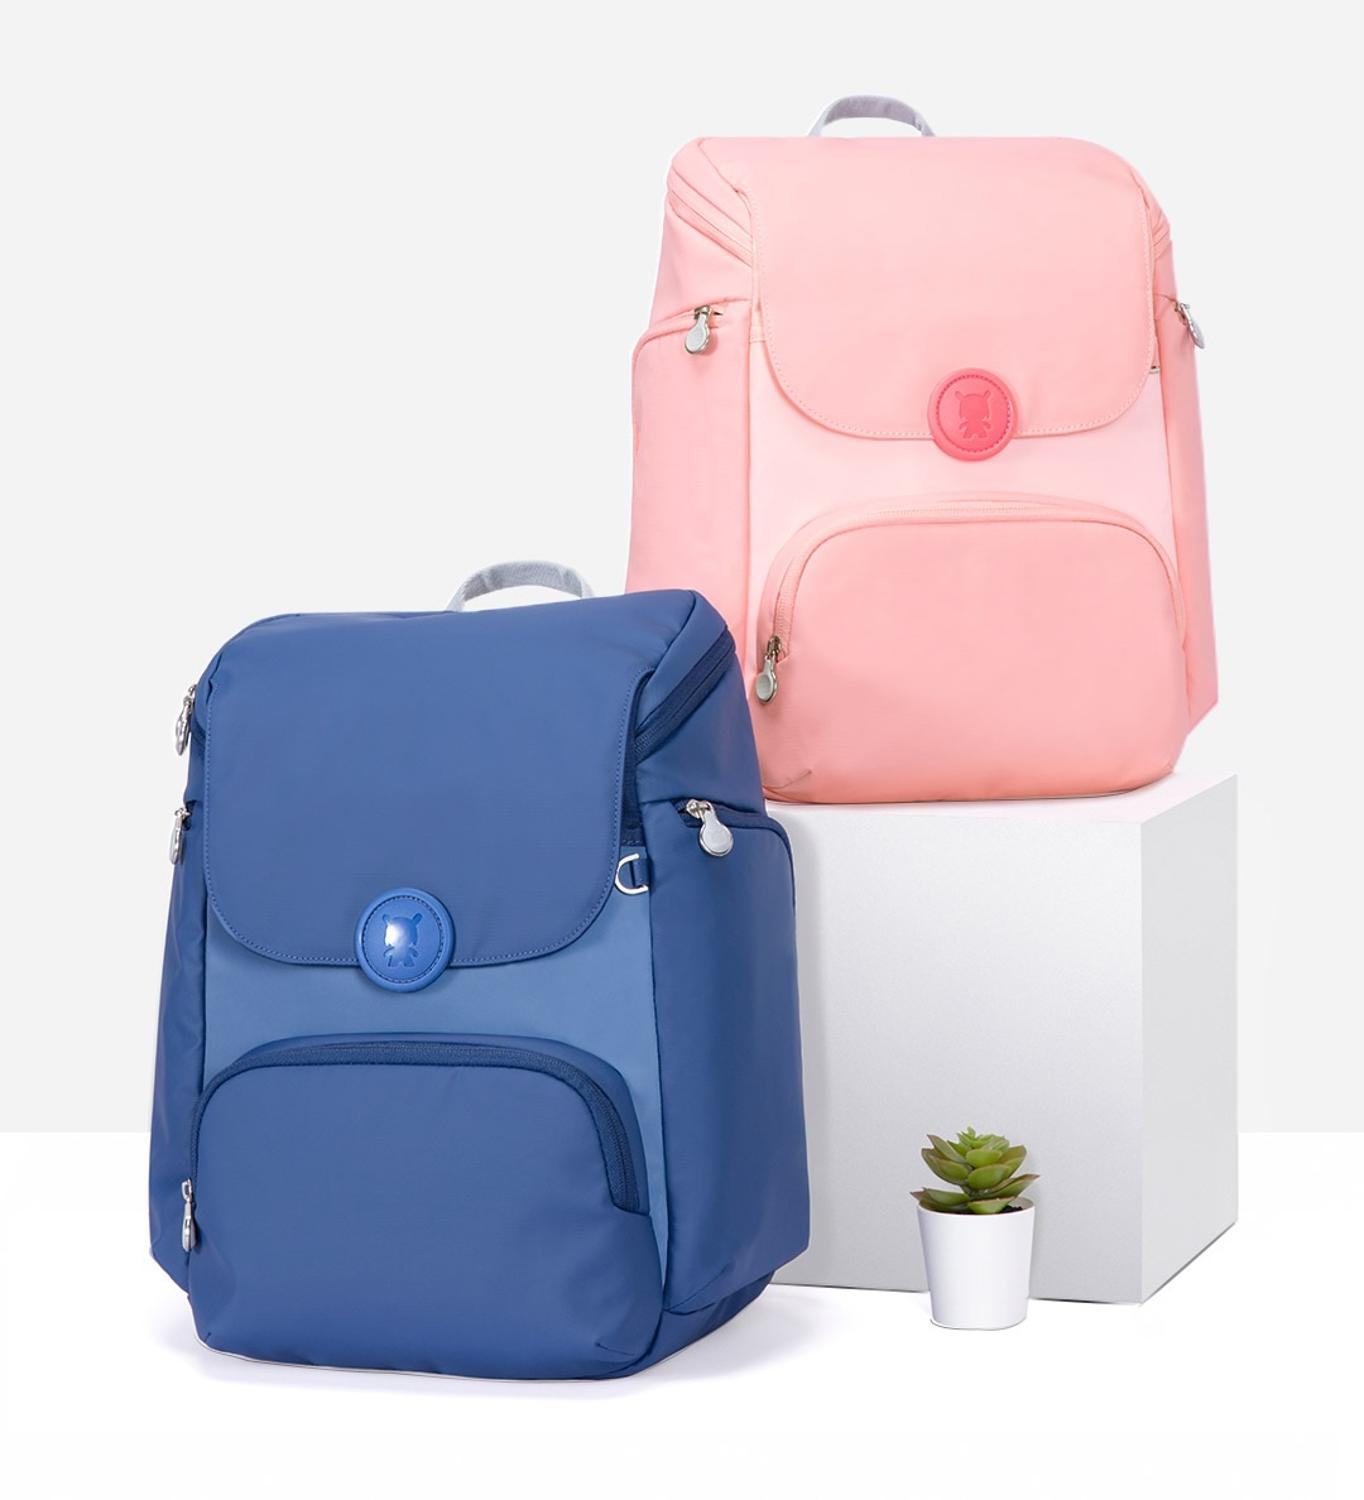 Xiaomi Mitu Kids Backpack 3 Children Bag School Bag EVA Material C.P Anti-fouling Fabric Comfortable Decompression Lightweight